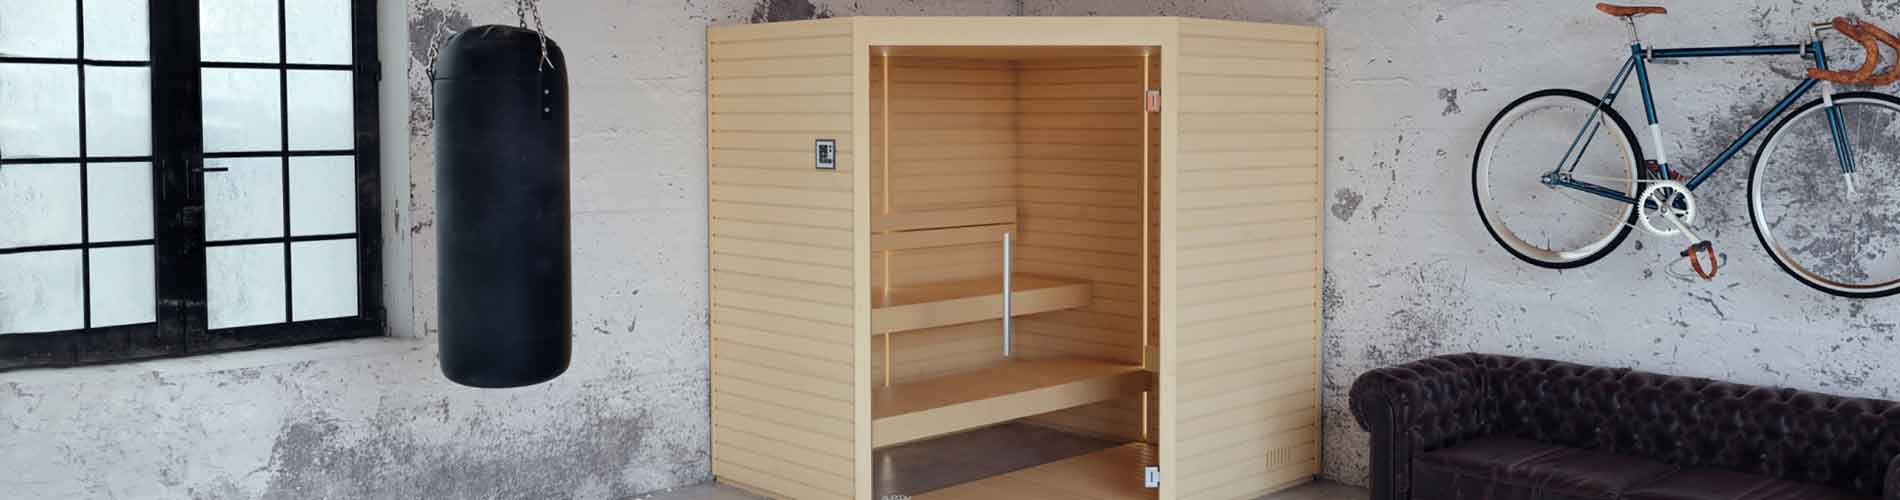 Sauna Interieur Bois Traditionnel Varia Auroom Geneve